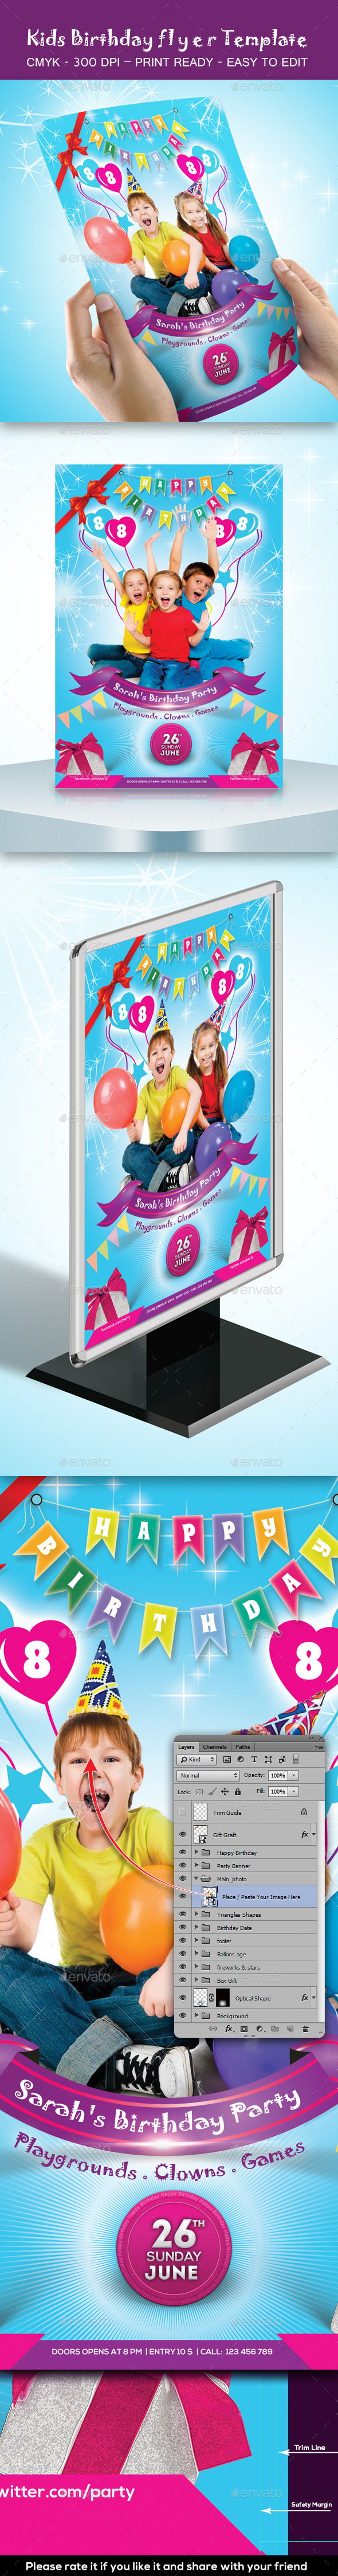 GraphicRiver Kids Birthday Party Flyer Template 9795651